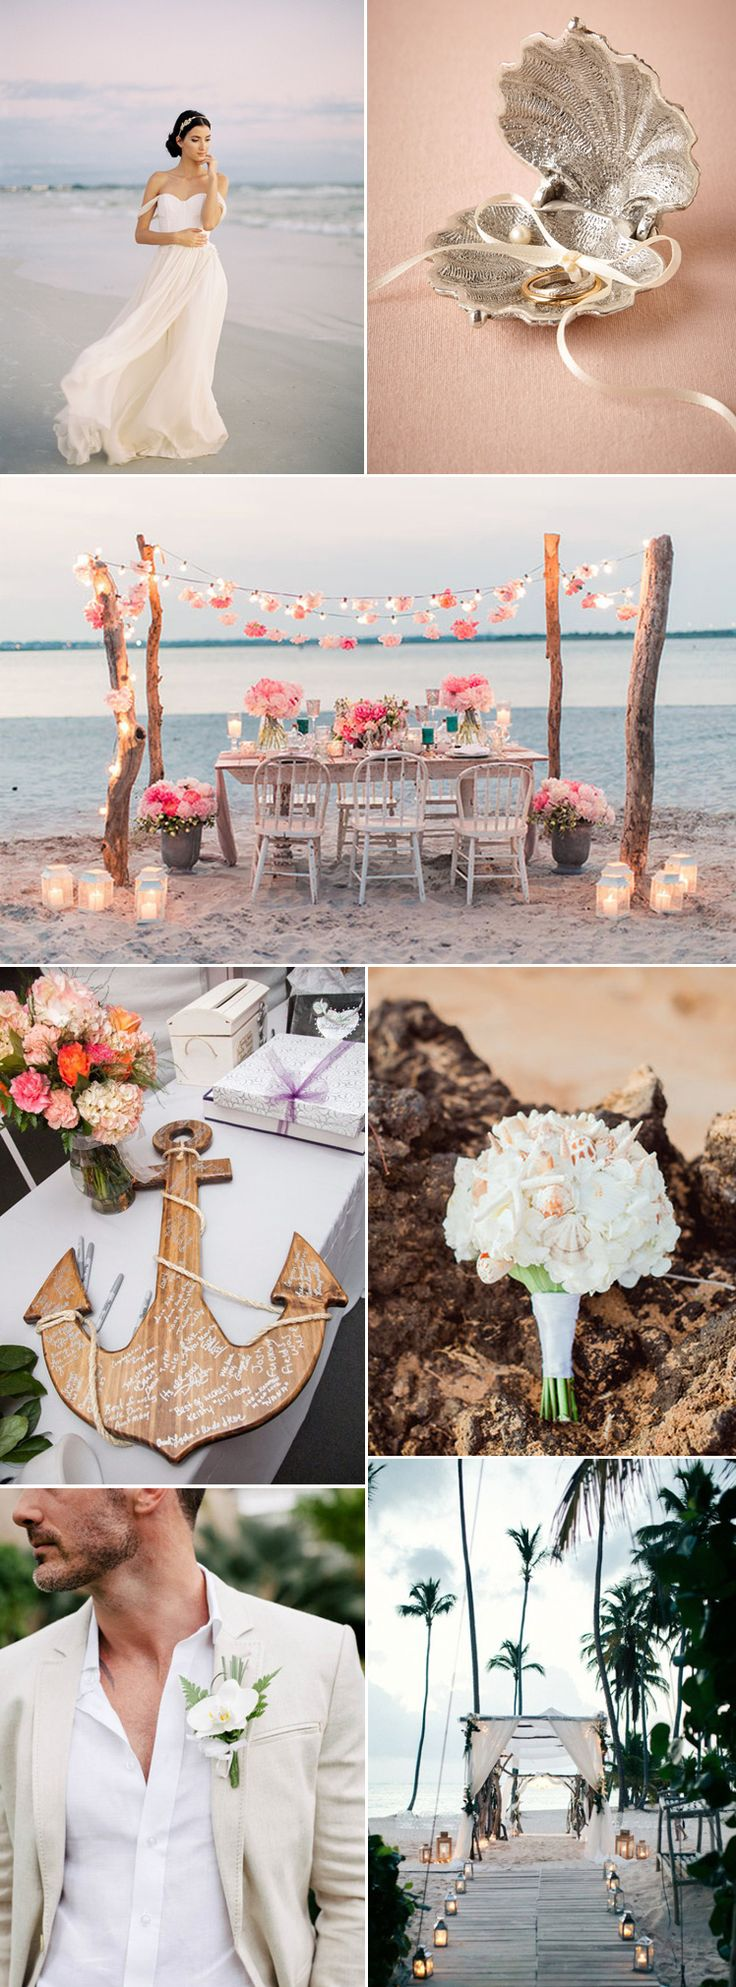 Tempted by a romantic beach wedding? Let us inspire you to go for a barefoot…